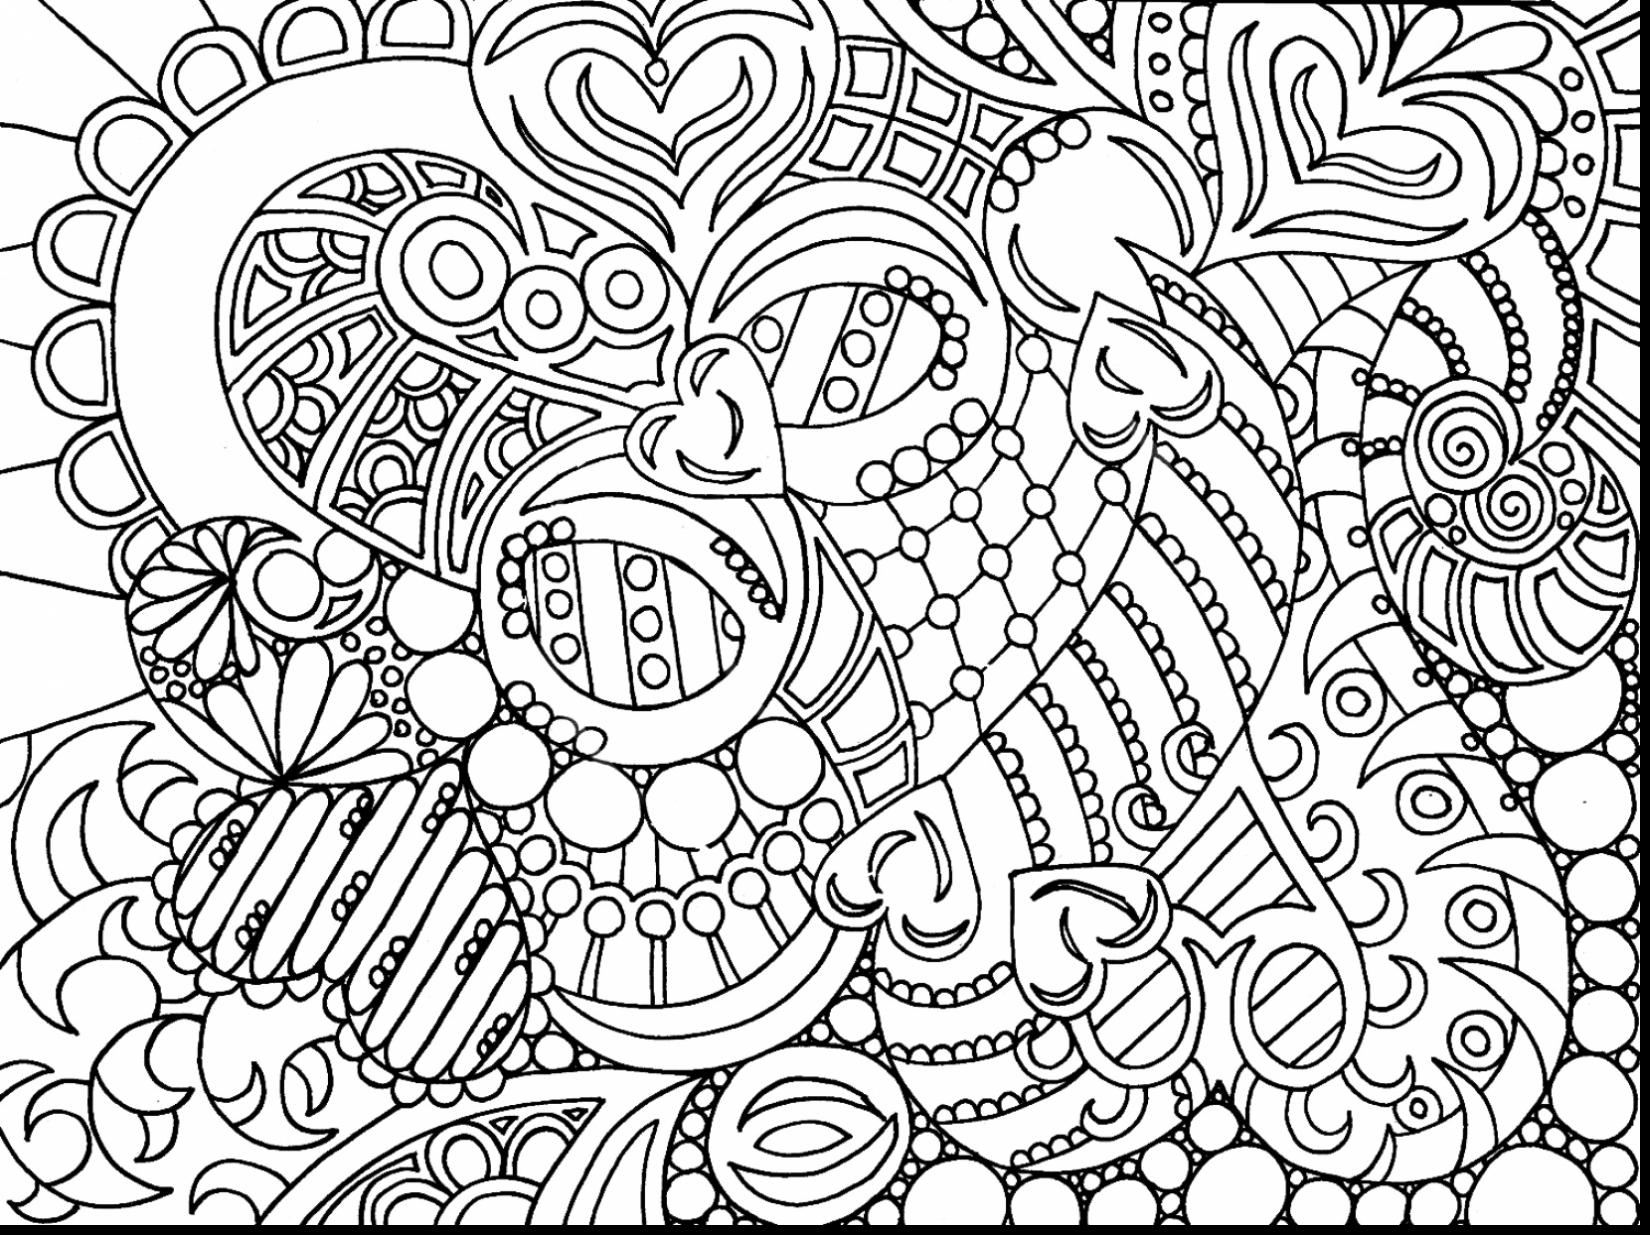 coloring pages for teens printable printable teen coloring pages at getcoloringscom free printable teens pages coloring for